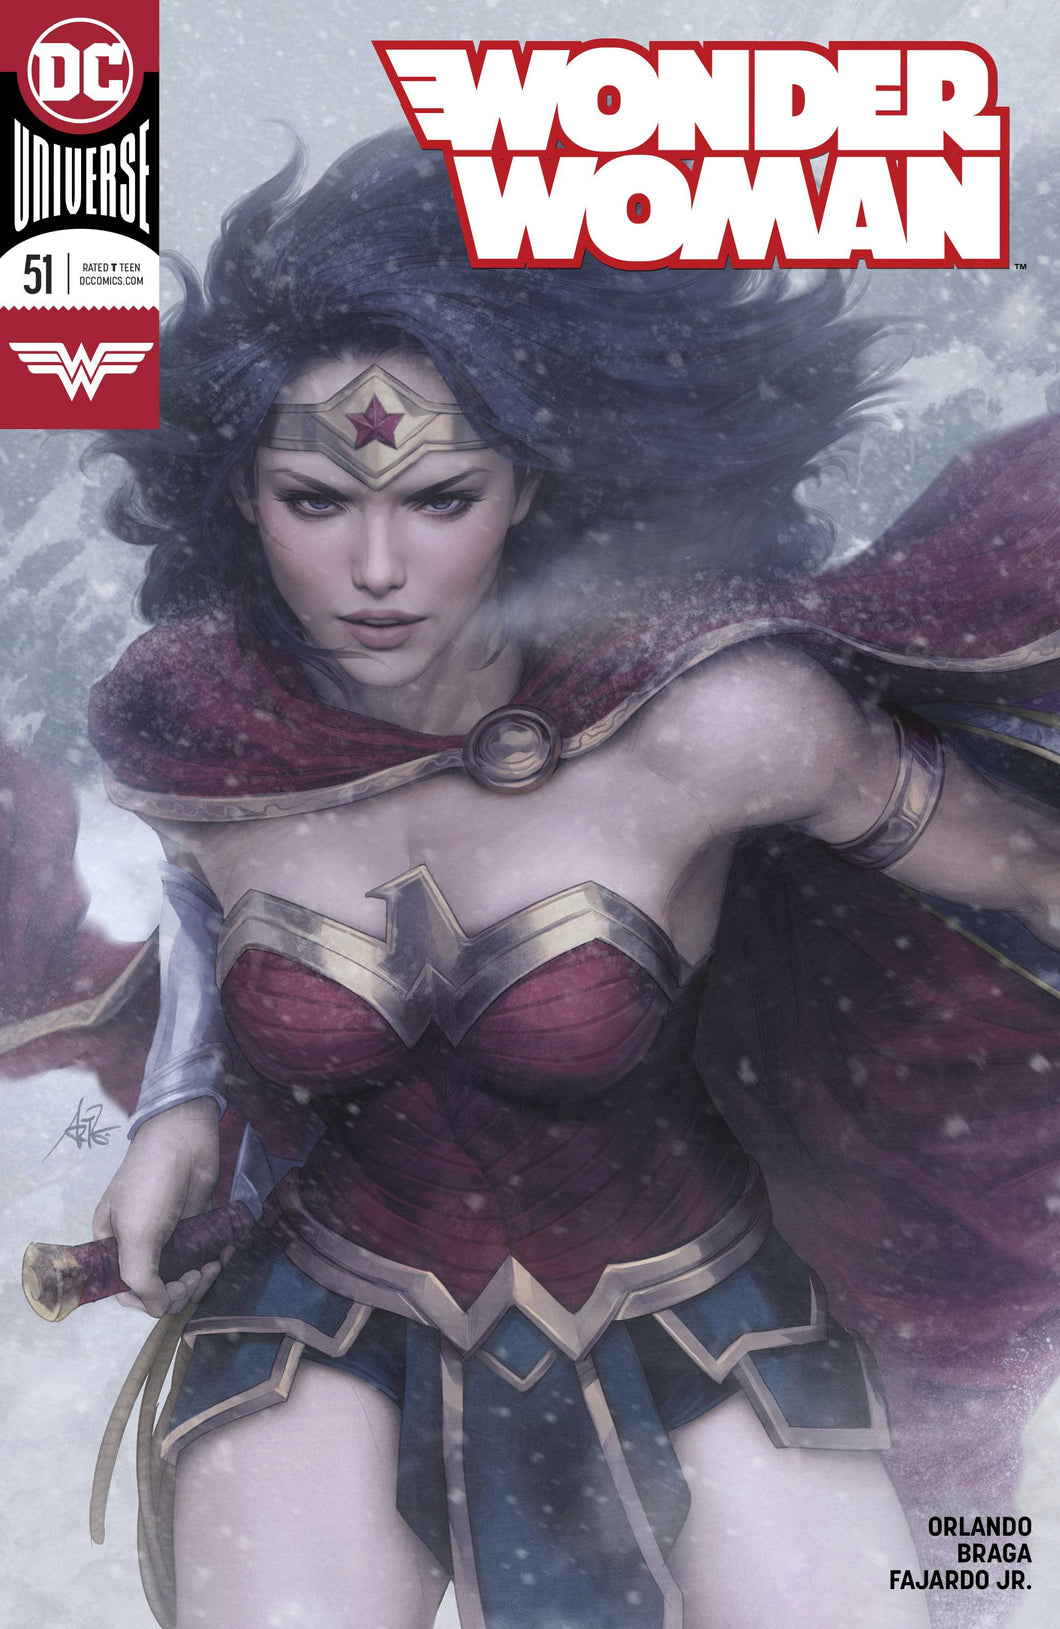 WONDER WOMAN #51 ARTGERM COVER FOC 07/02 (ADVANCE ORDER) 07/25